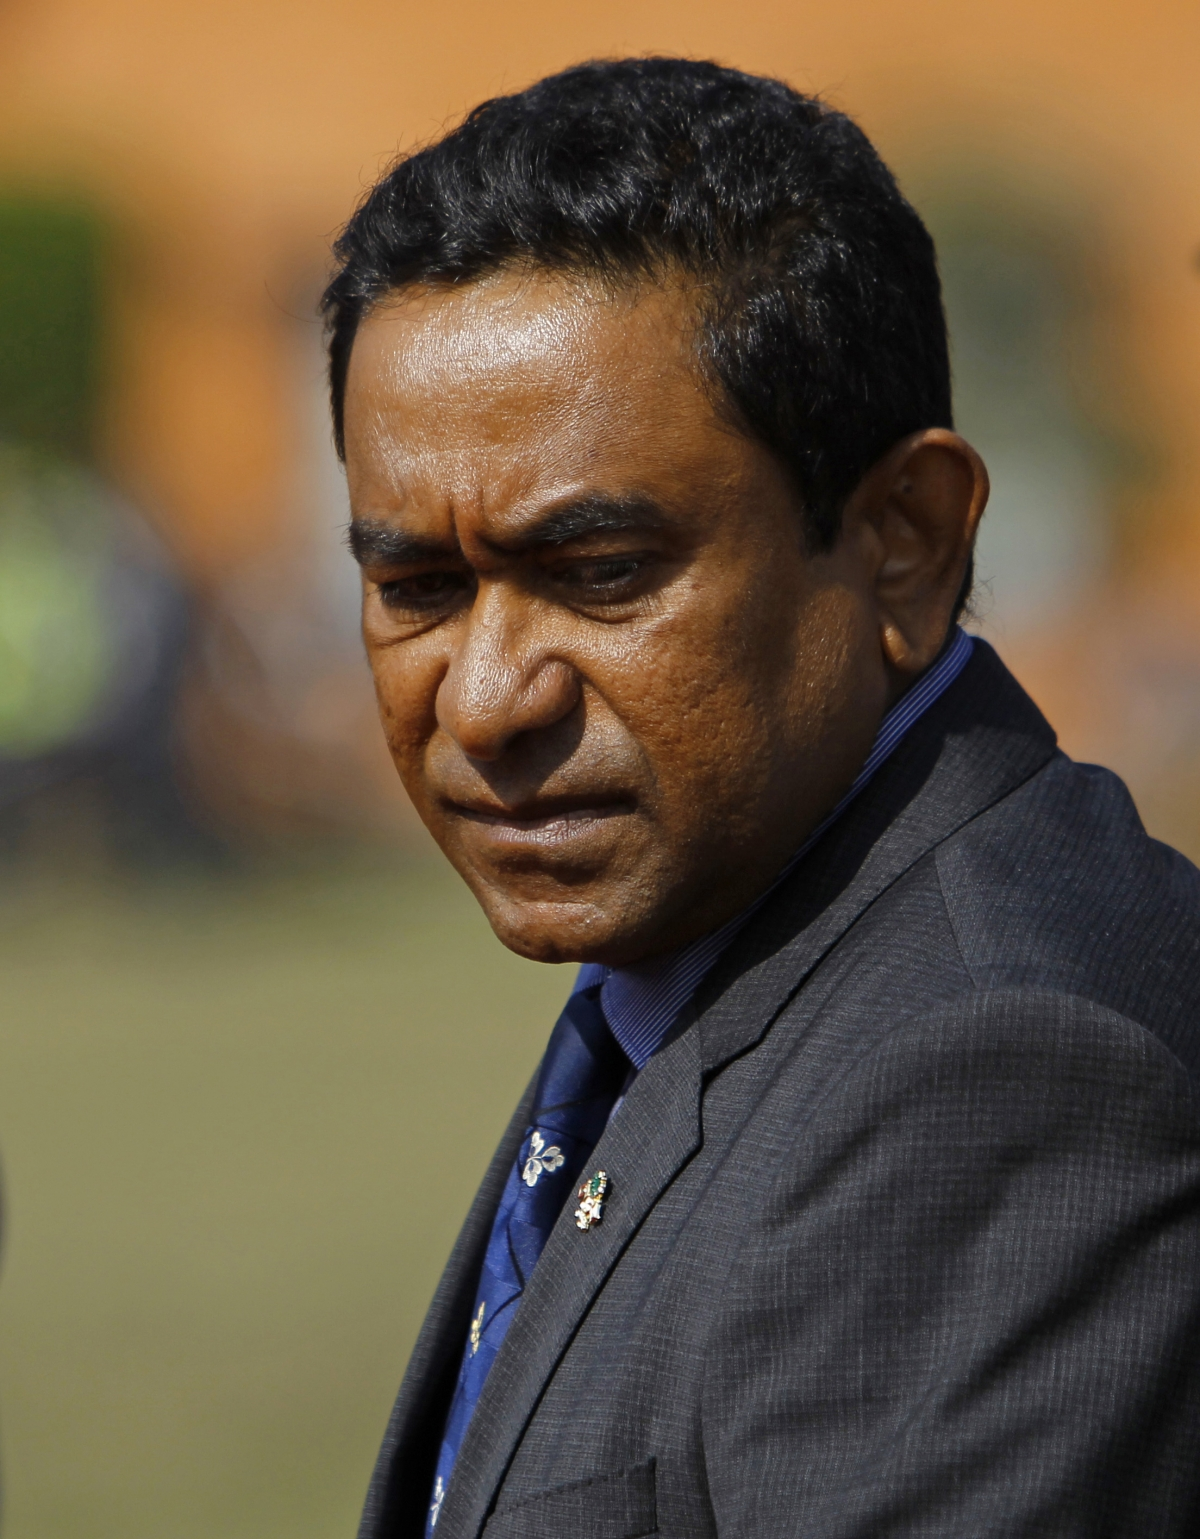 how law is passed in maldives New york, august 10, 2016--maldivian president abdulla yameen abdul  gayoom should veto a criminal defamation law the parliament passed.